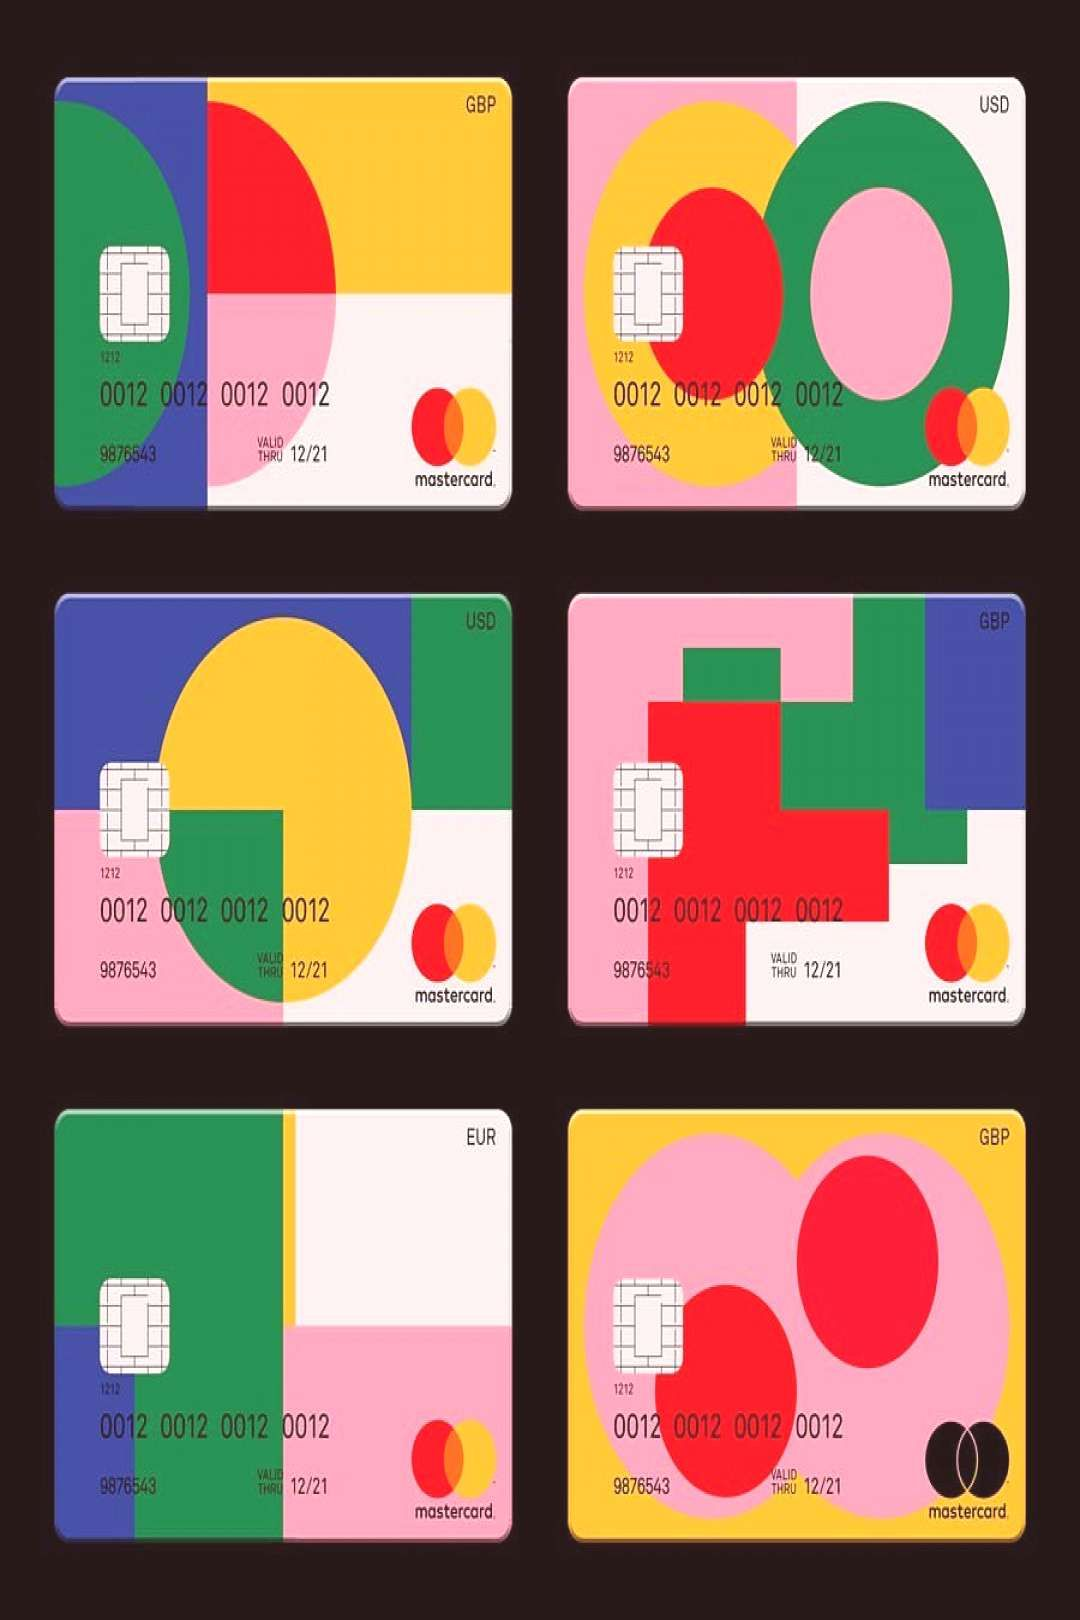 Credit cards designed by Gregory Page You can find Credit card design and more on ou